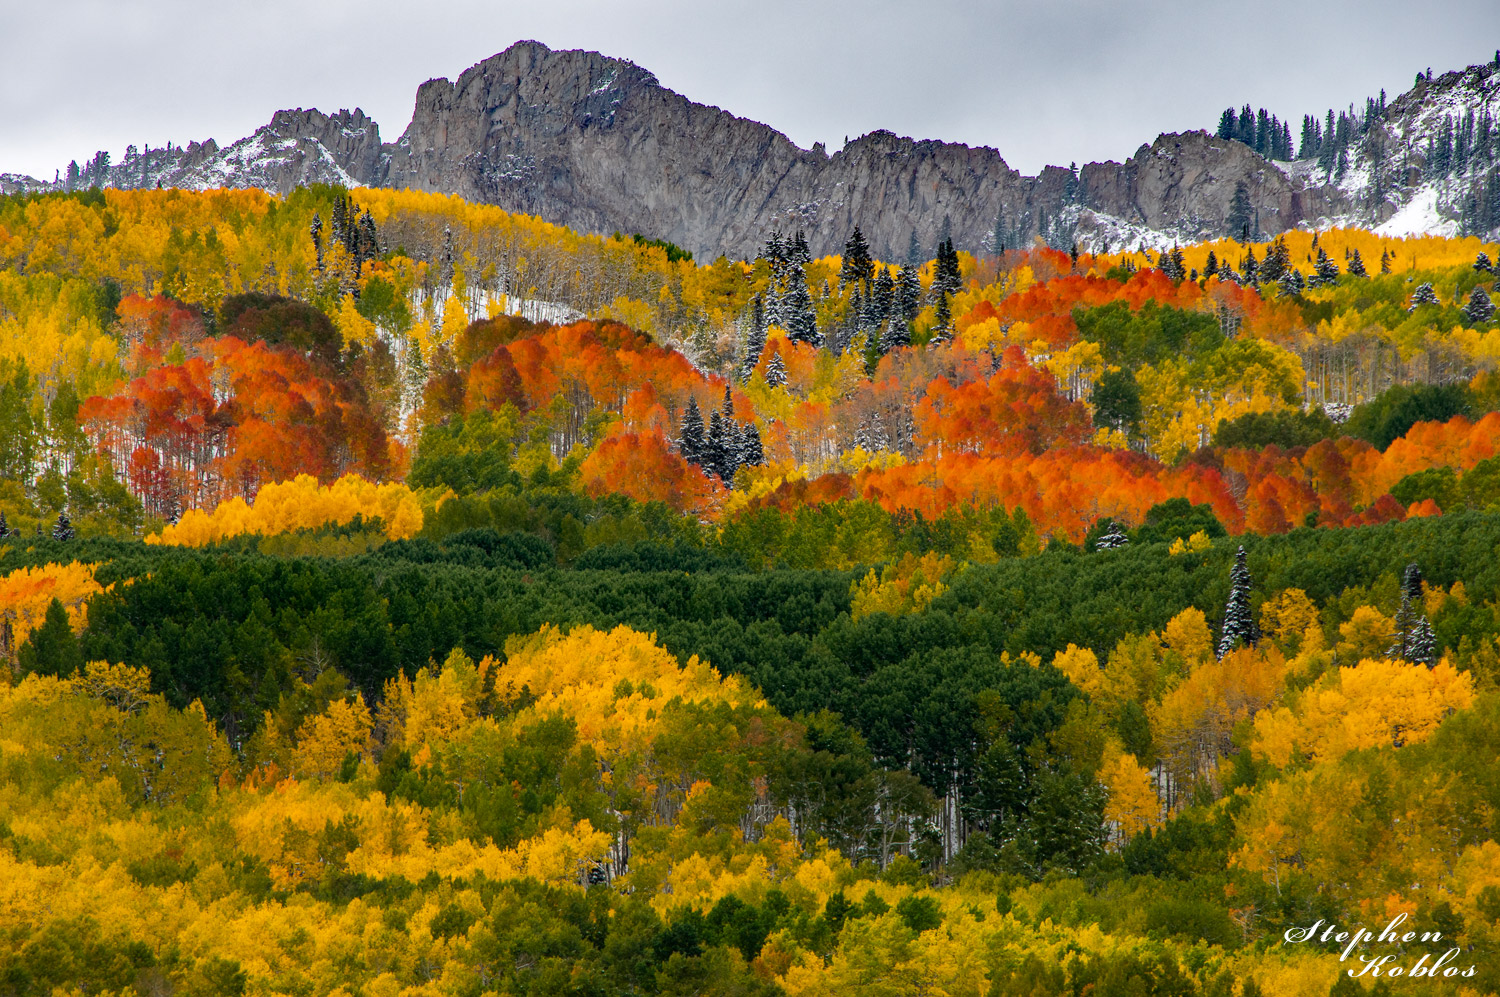 This scene shows the different colors aspens can take on.   Limited Edition of 250